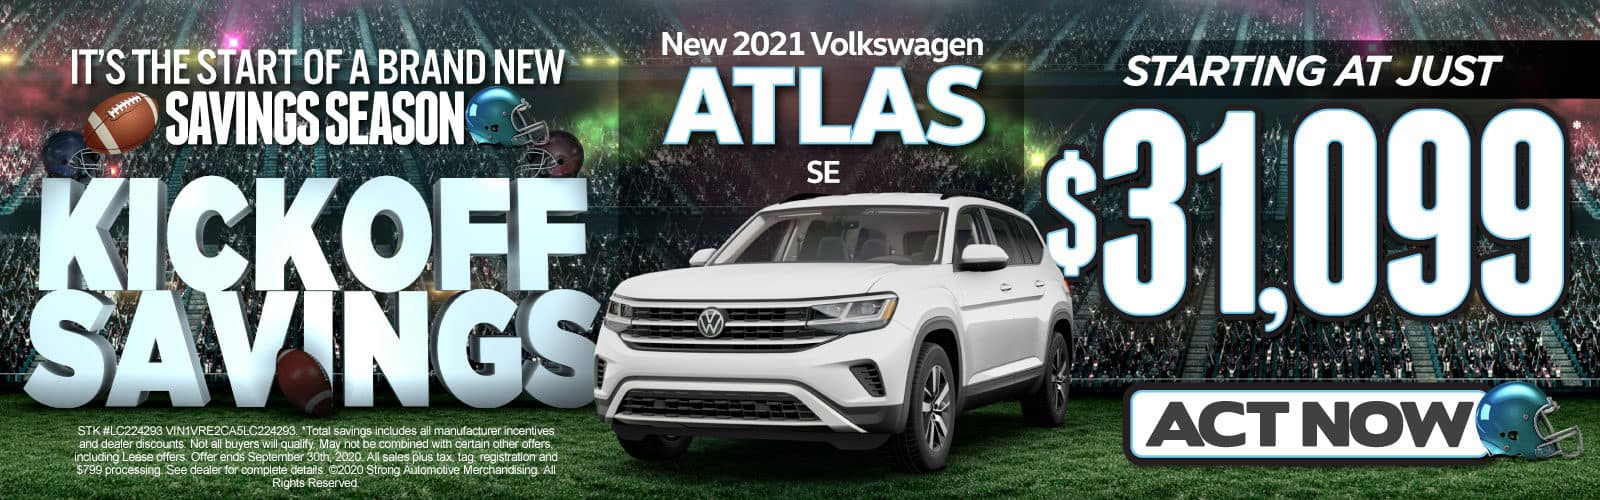 New 2020 Atlas SE - Starting at just $31,099 - Act Now